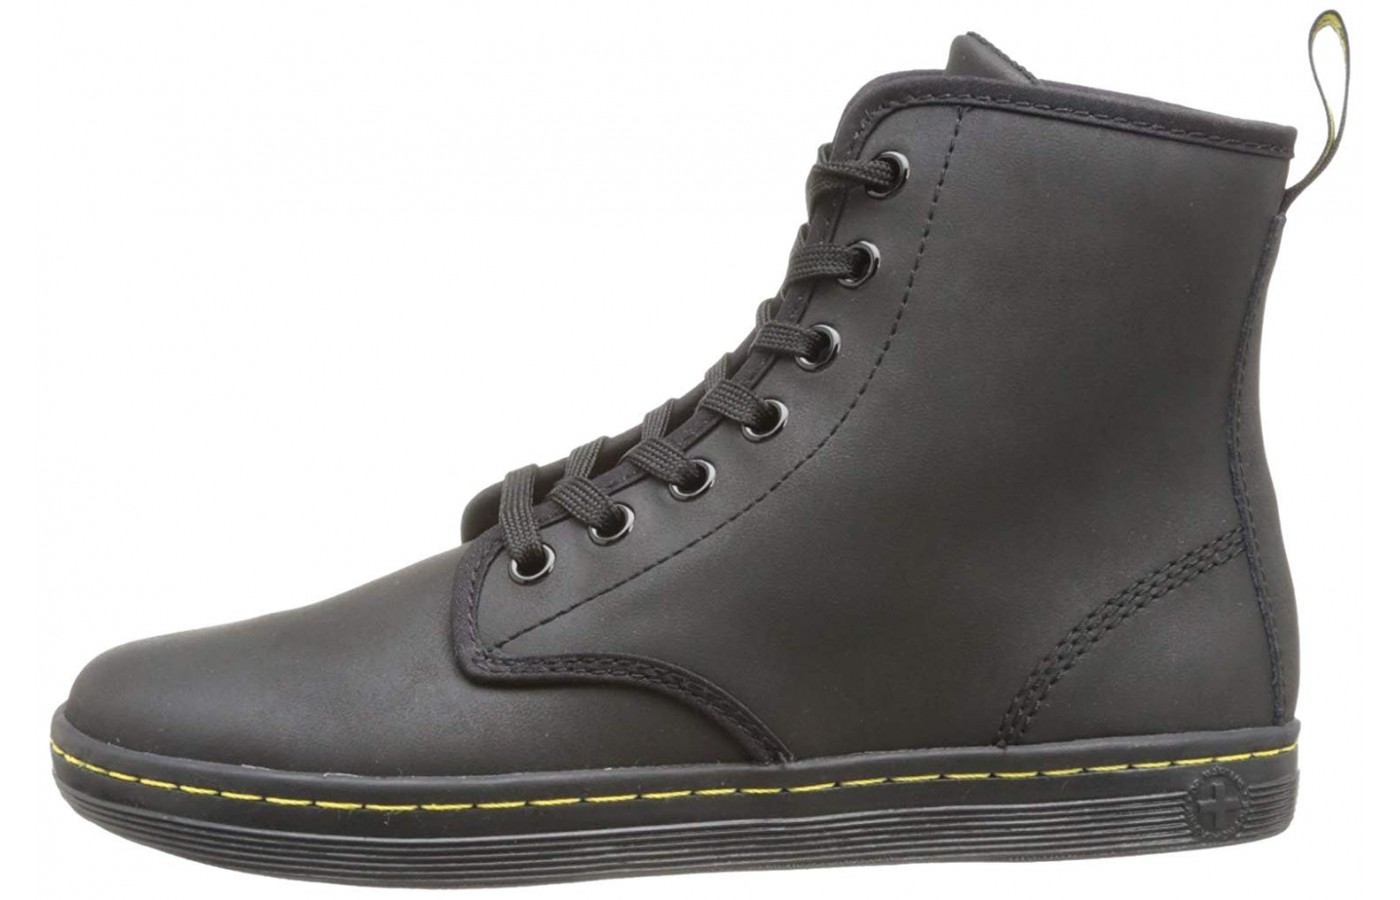 Dr. Martens Shoreditch Left